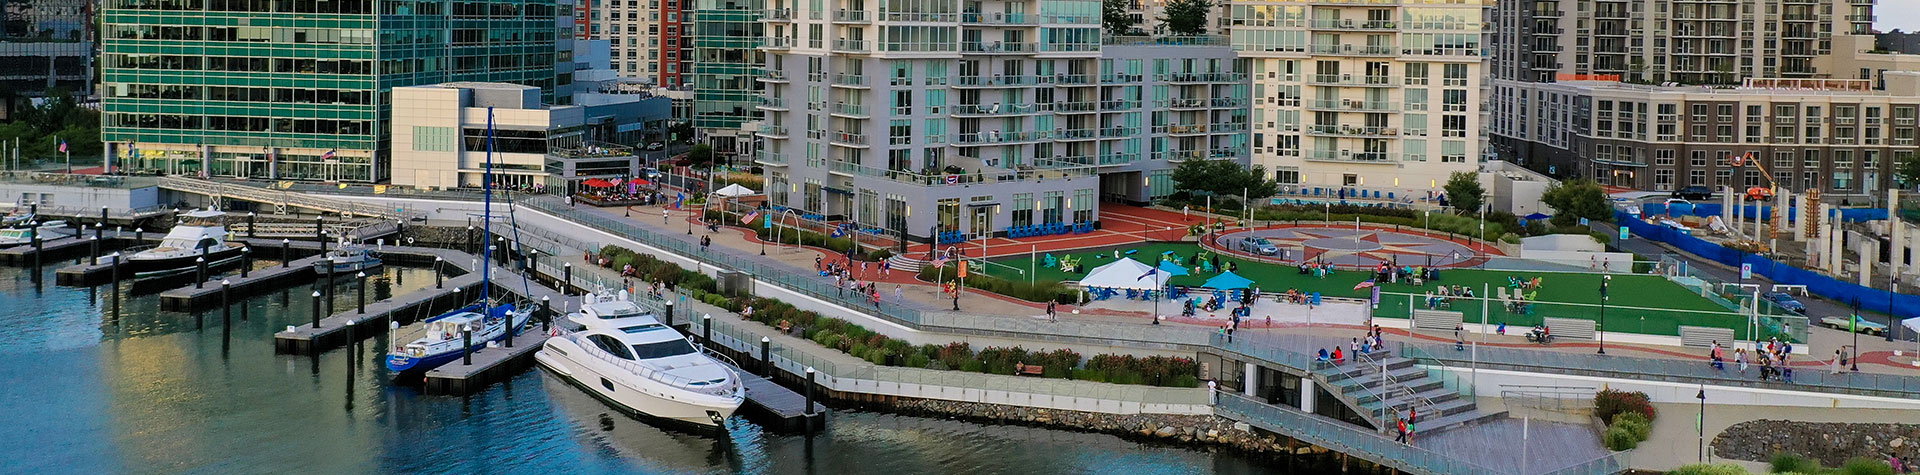 blt live work play great staford waterfront apartments for rent